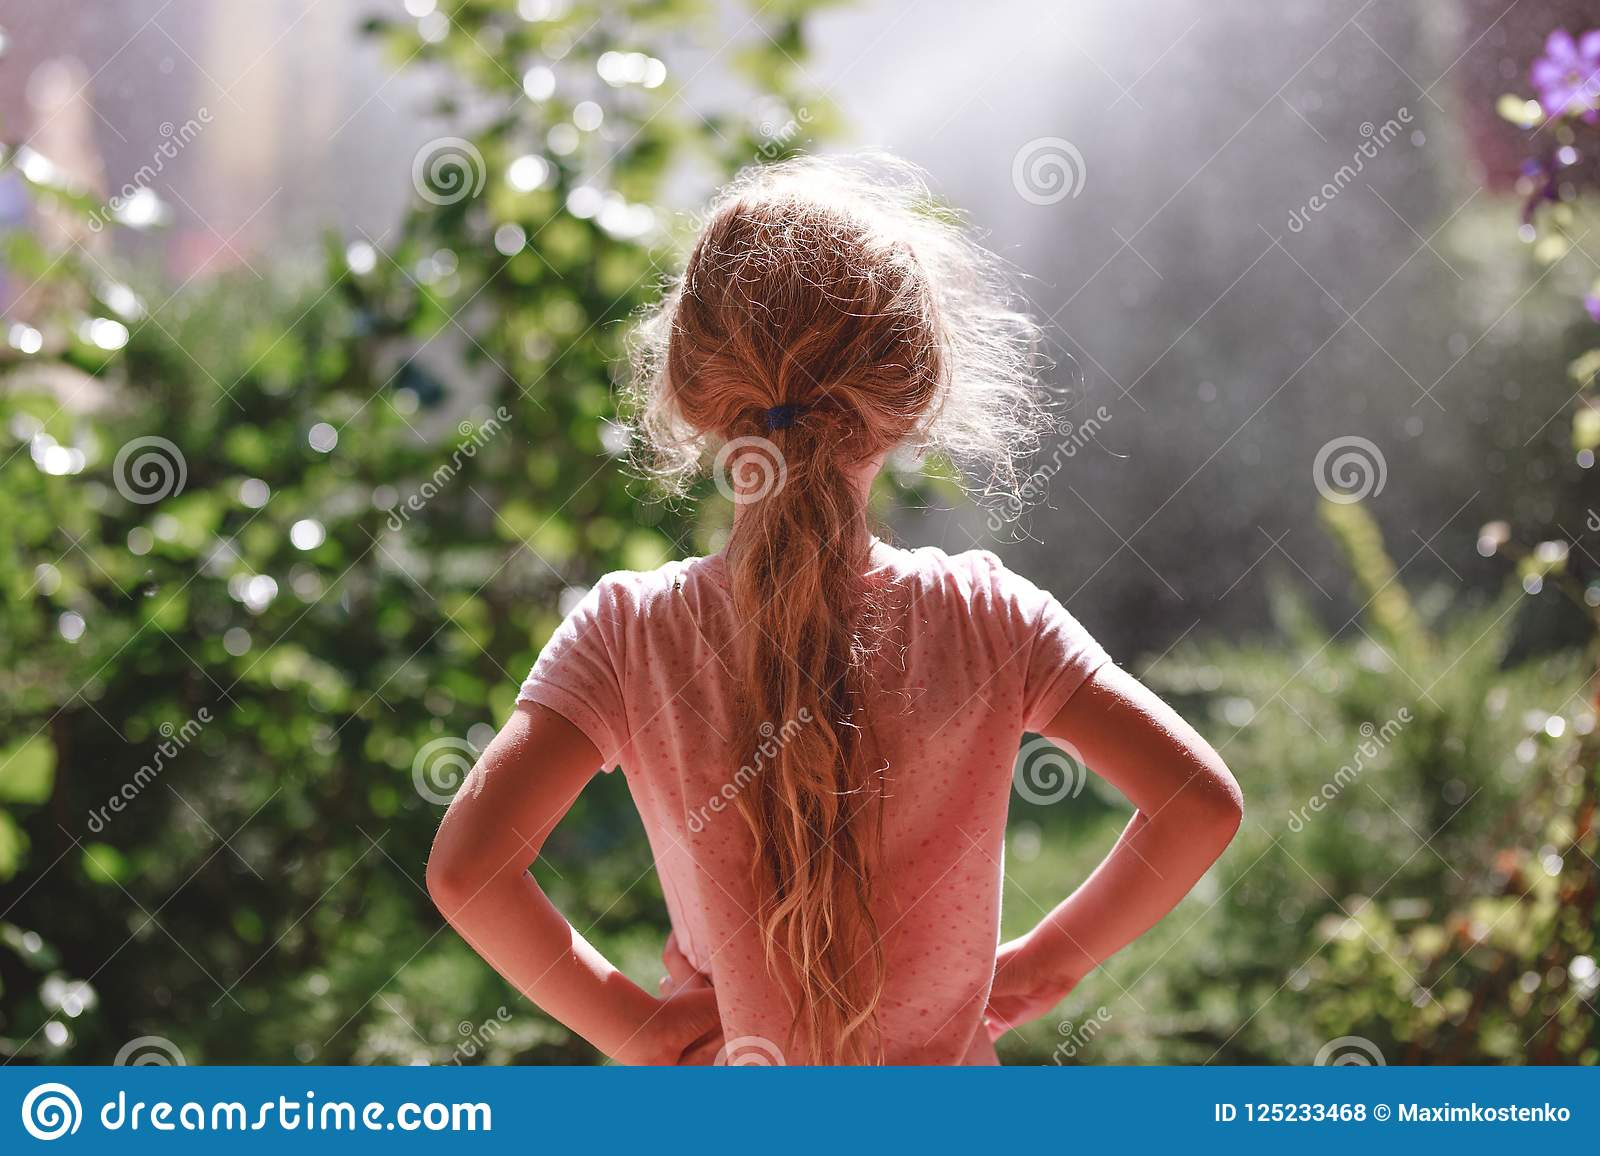 Back view of seven years old blonde girl wearing pyjamas standing outdoor in home garden in the early morning